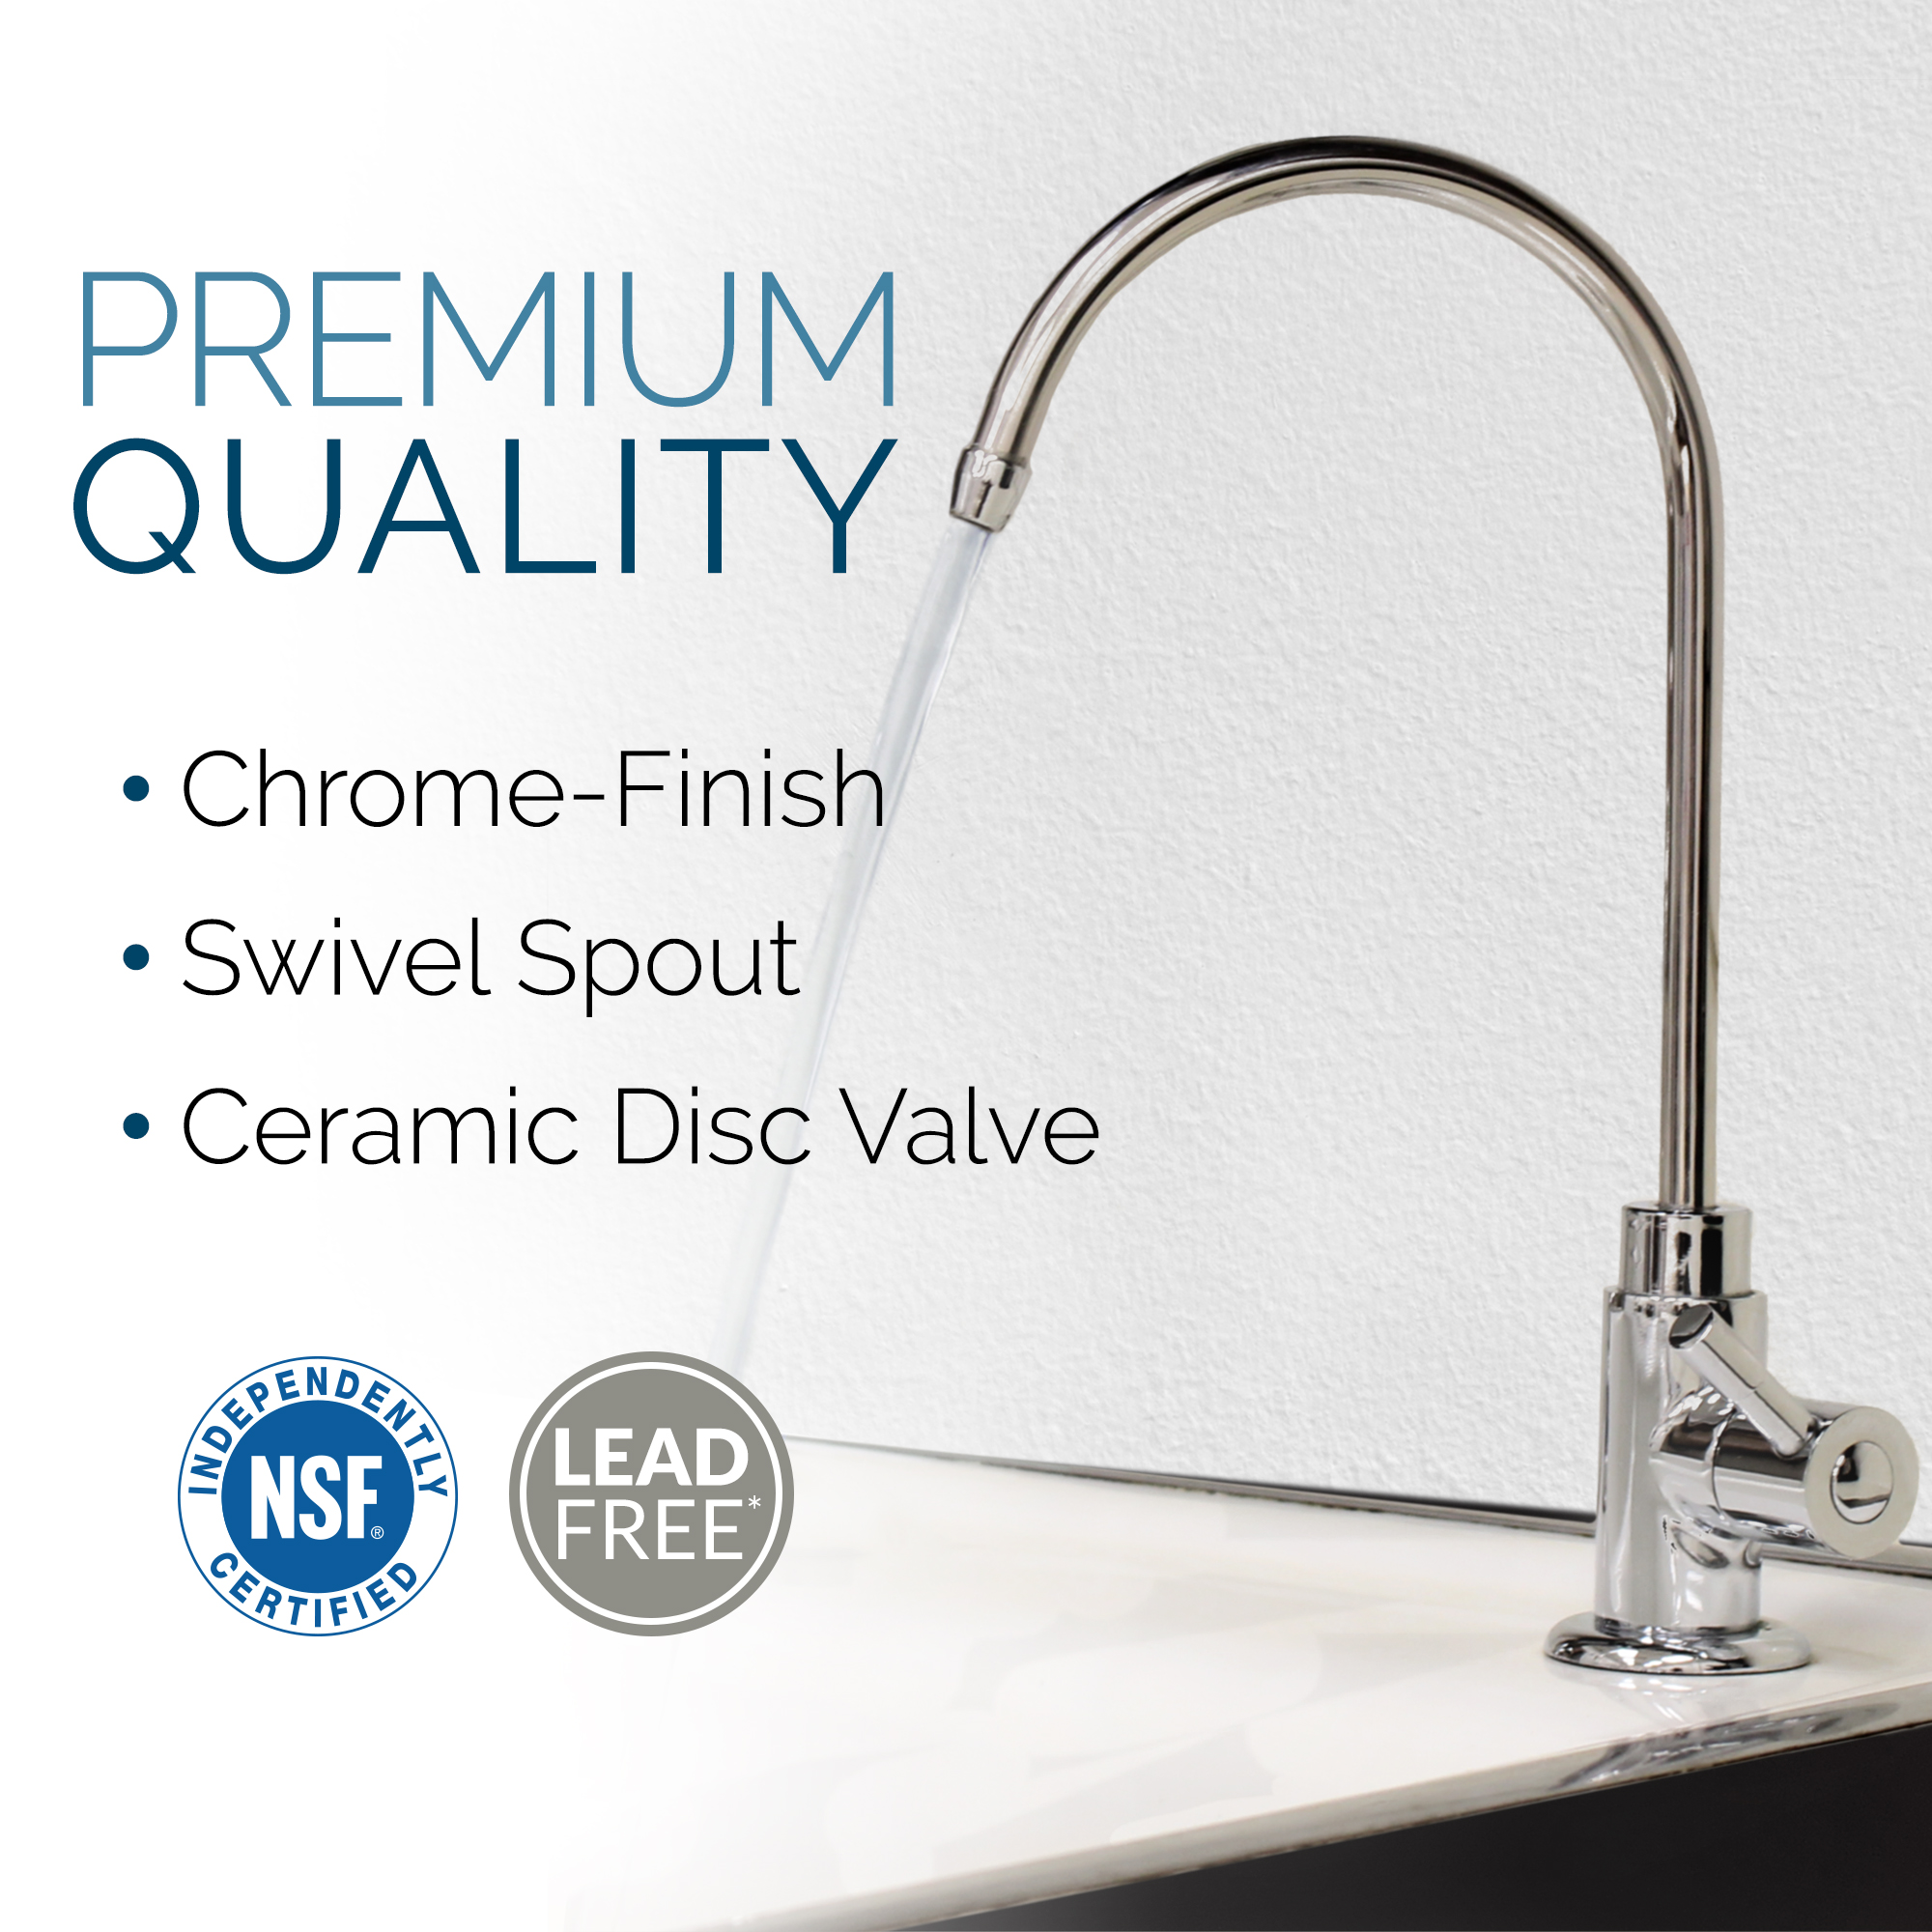 brushed water lead reverse faucets designer osmosis instant free faucet htm detail main westbrook hot dt cold temperature nickel bn